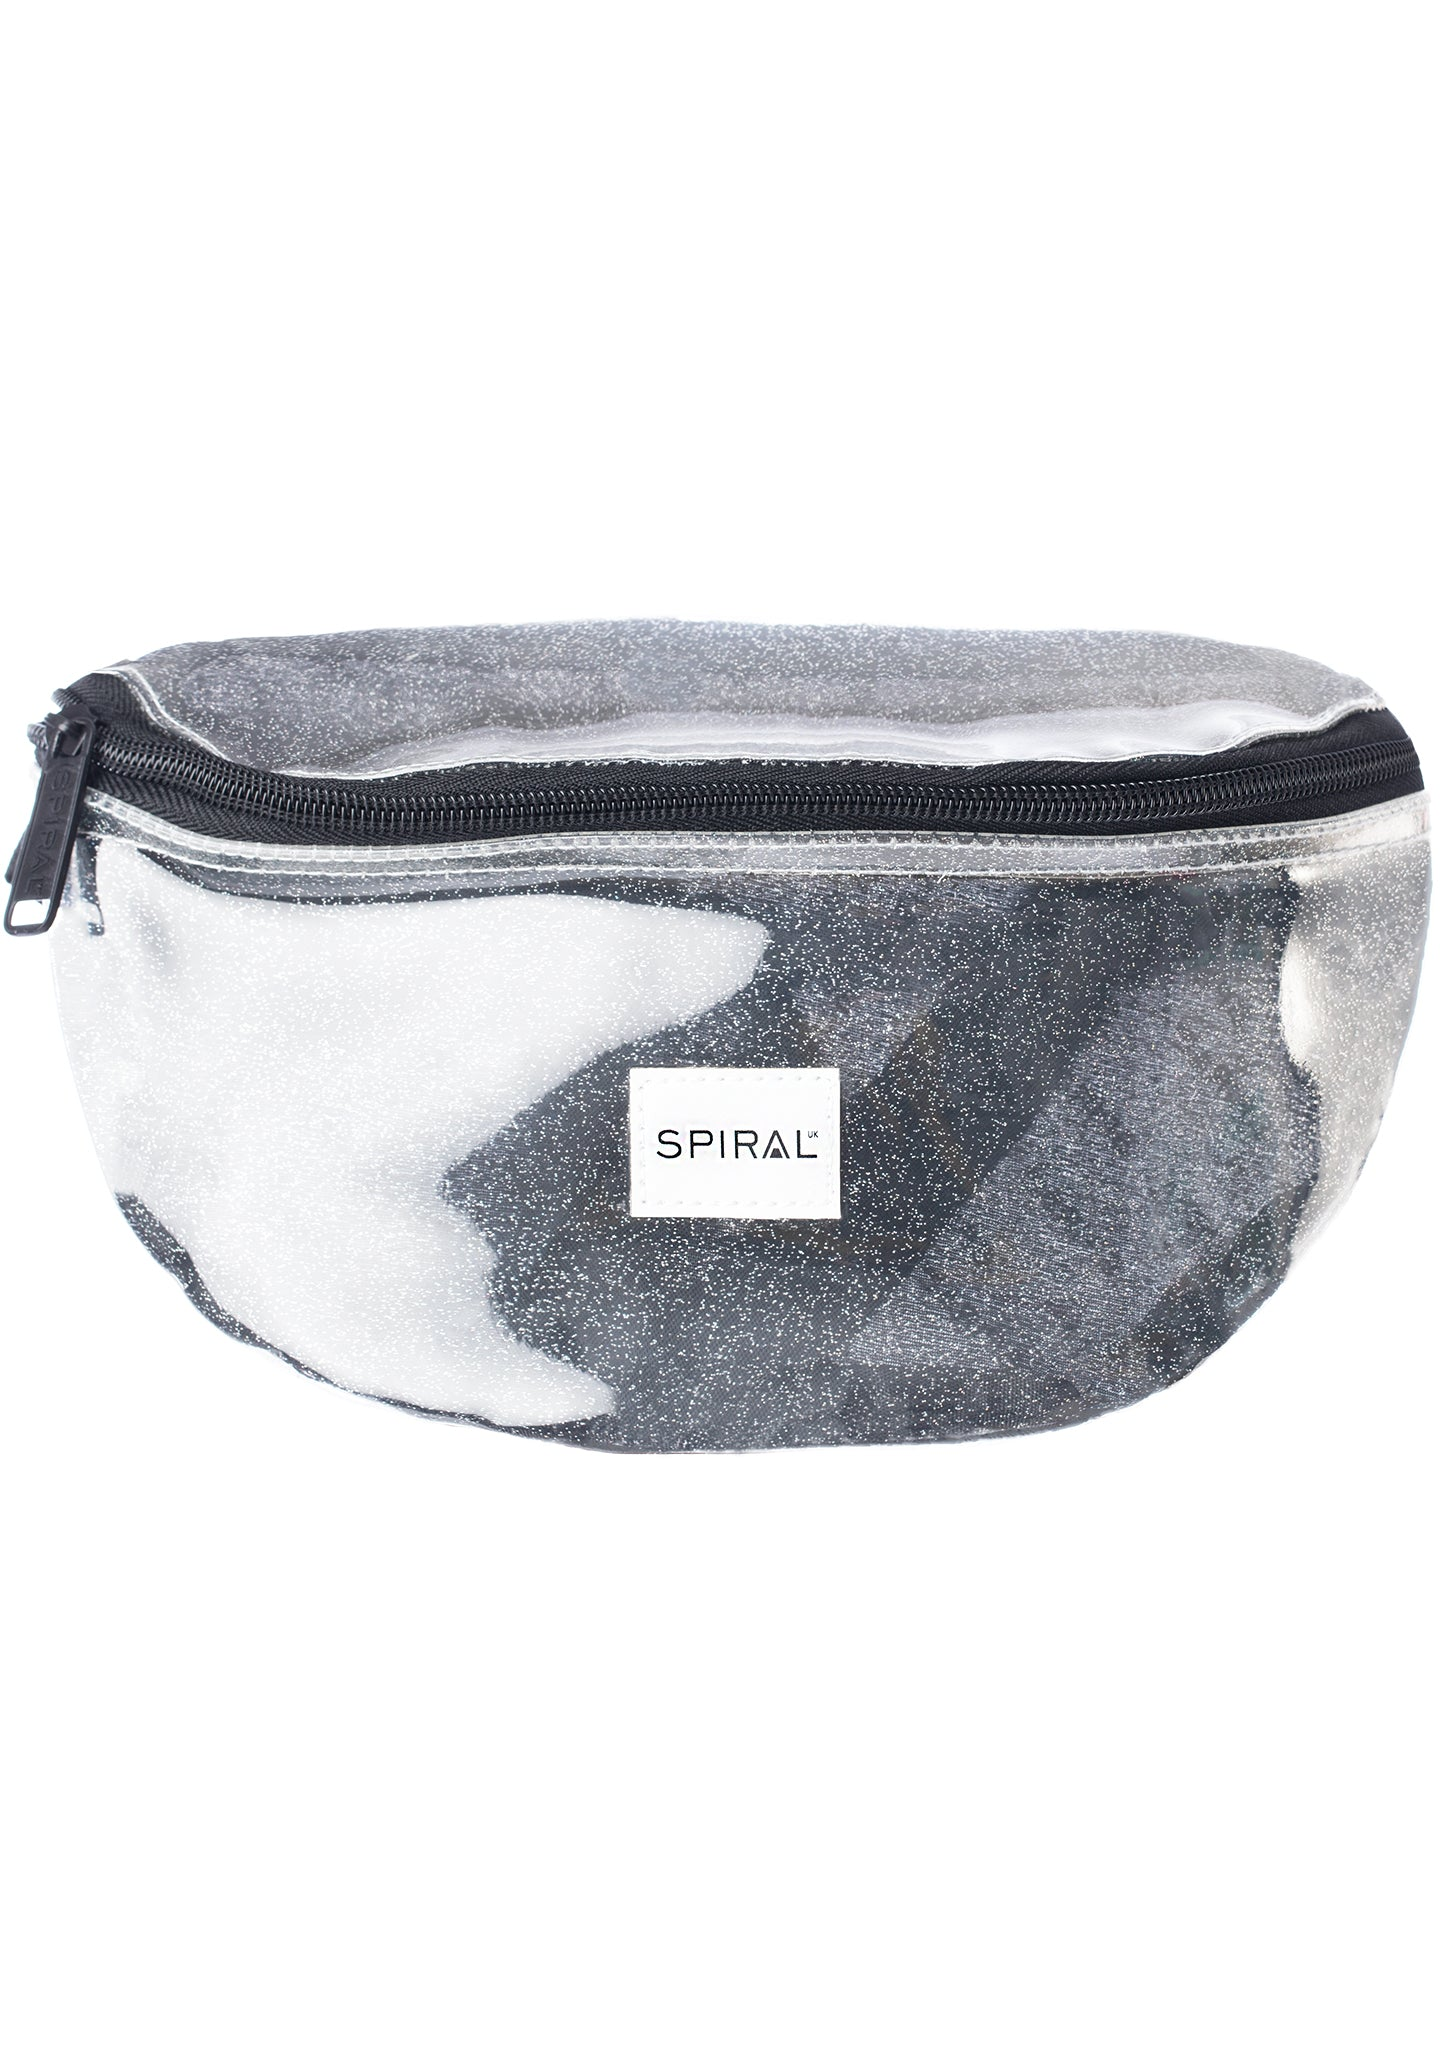 See Thru Sparkle Bum Bag in Silver